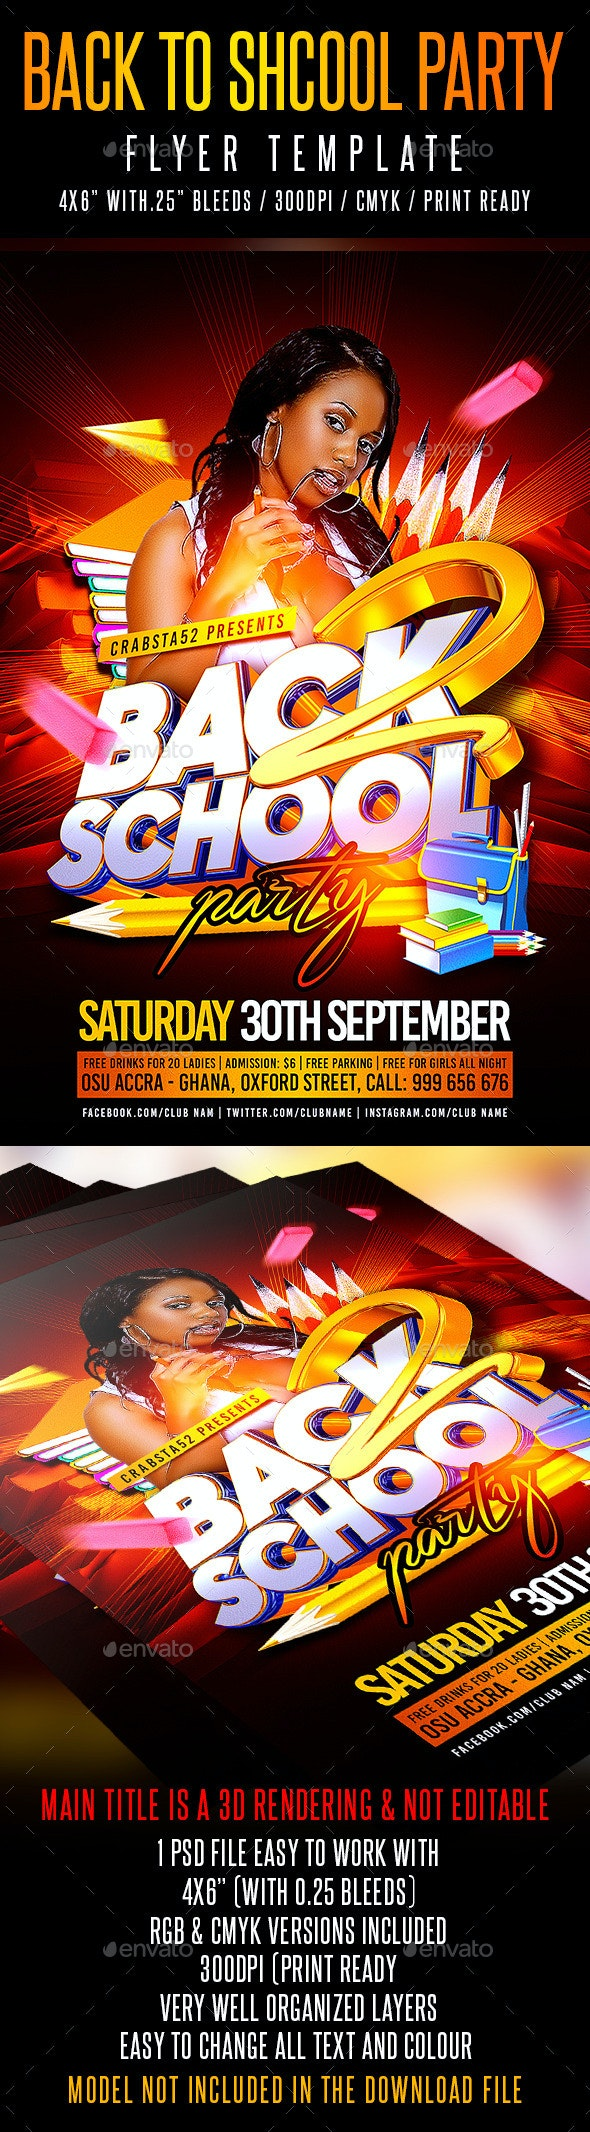 Back to School Party Flyer Template - Events Flyers